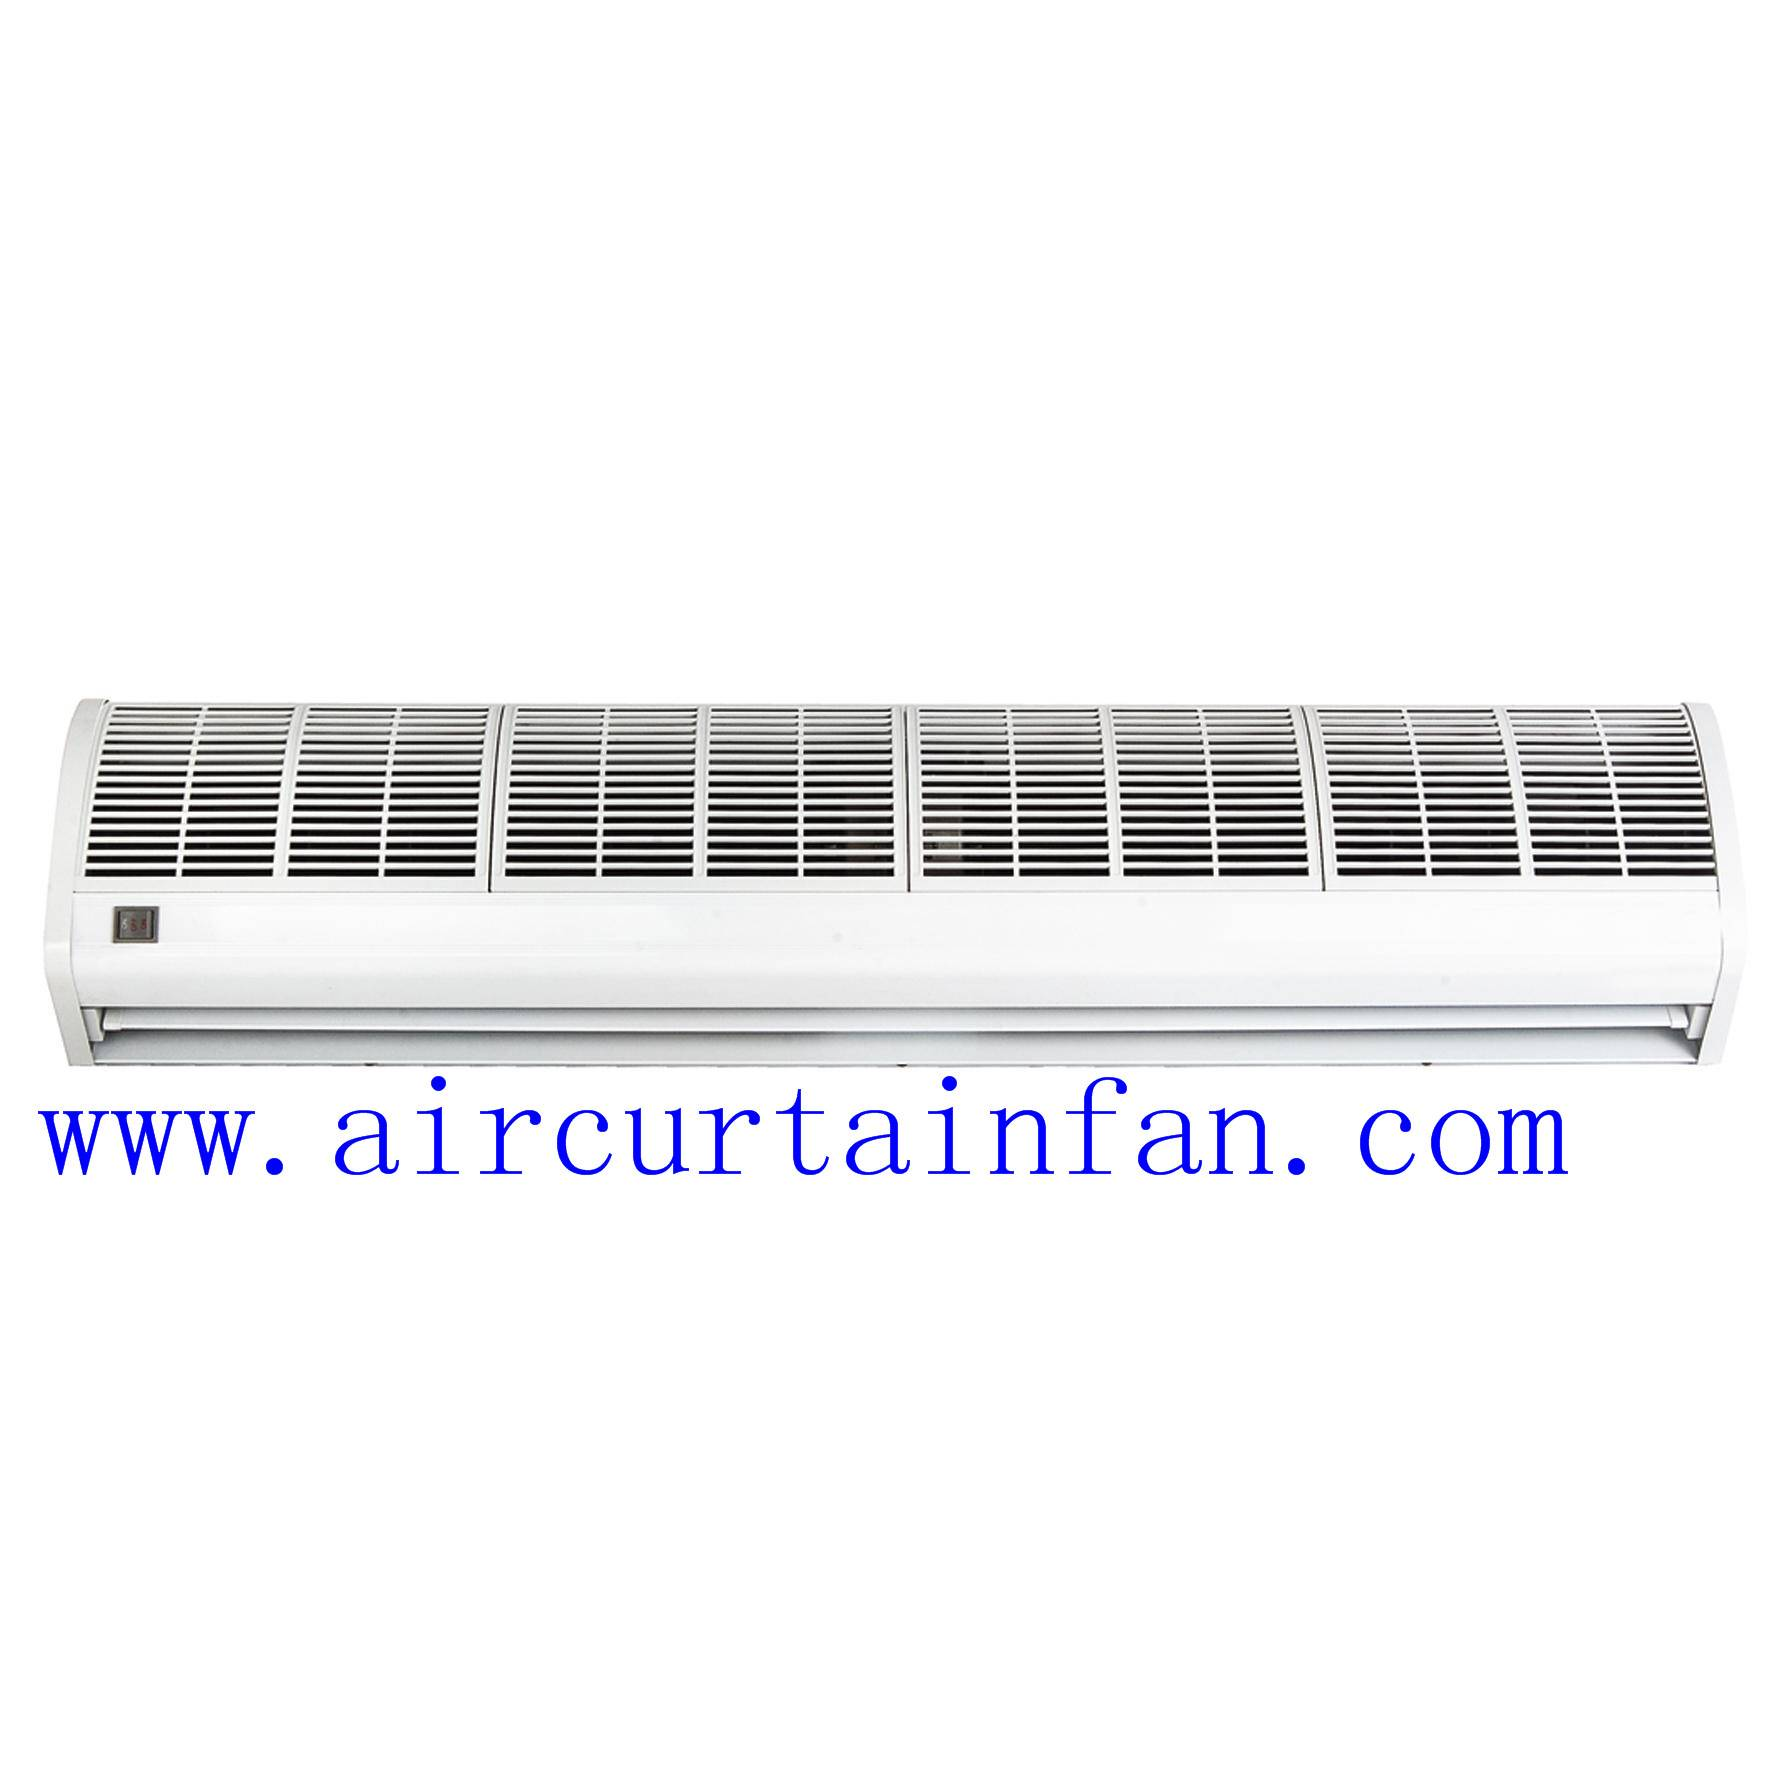 900-1500mm button control cross-flow ambient air curtain